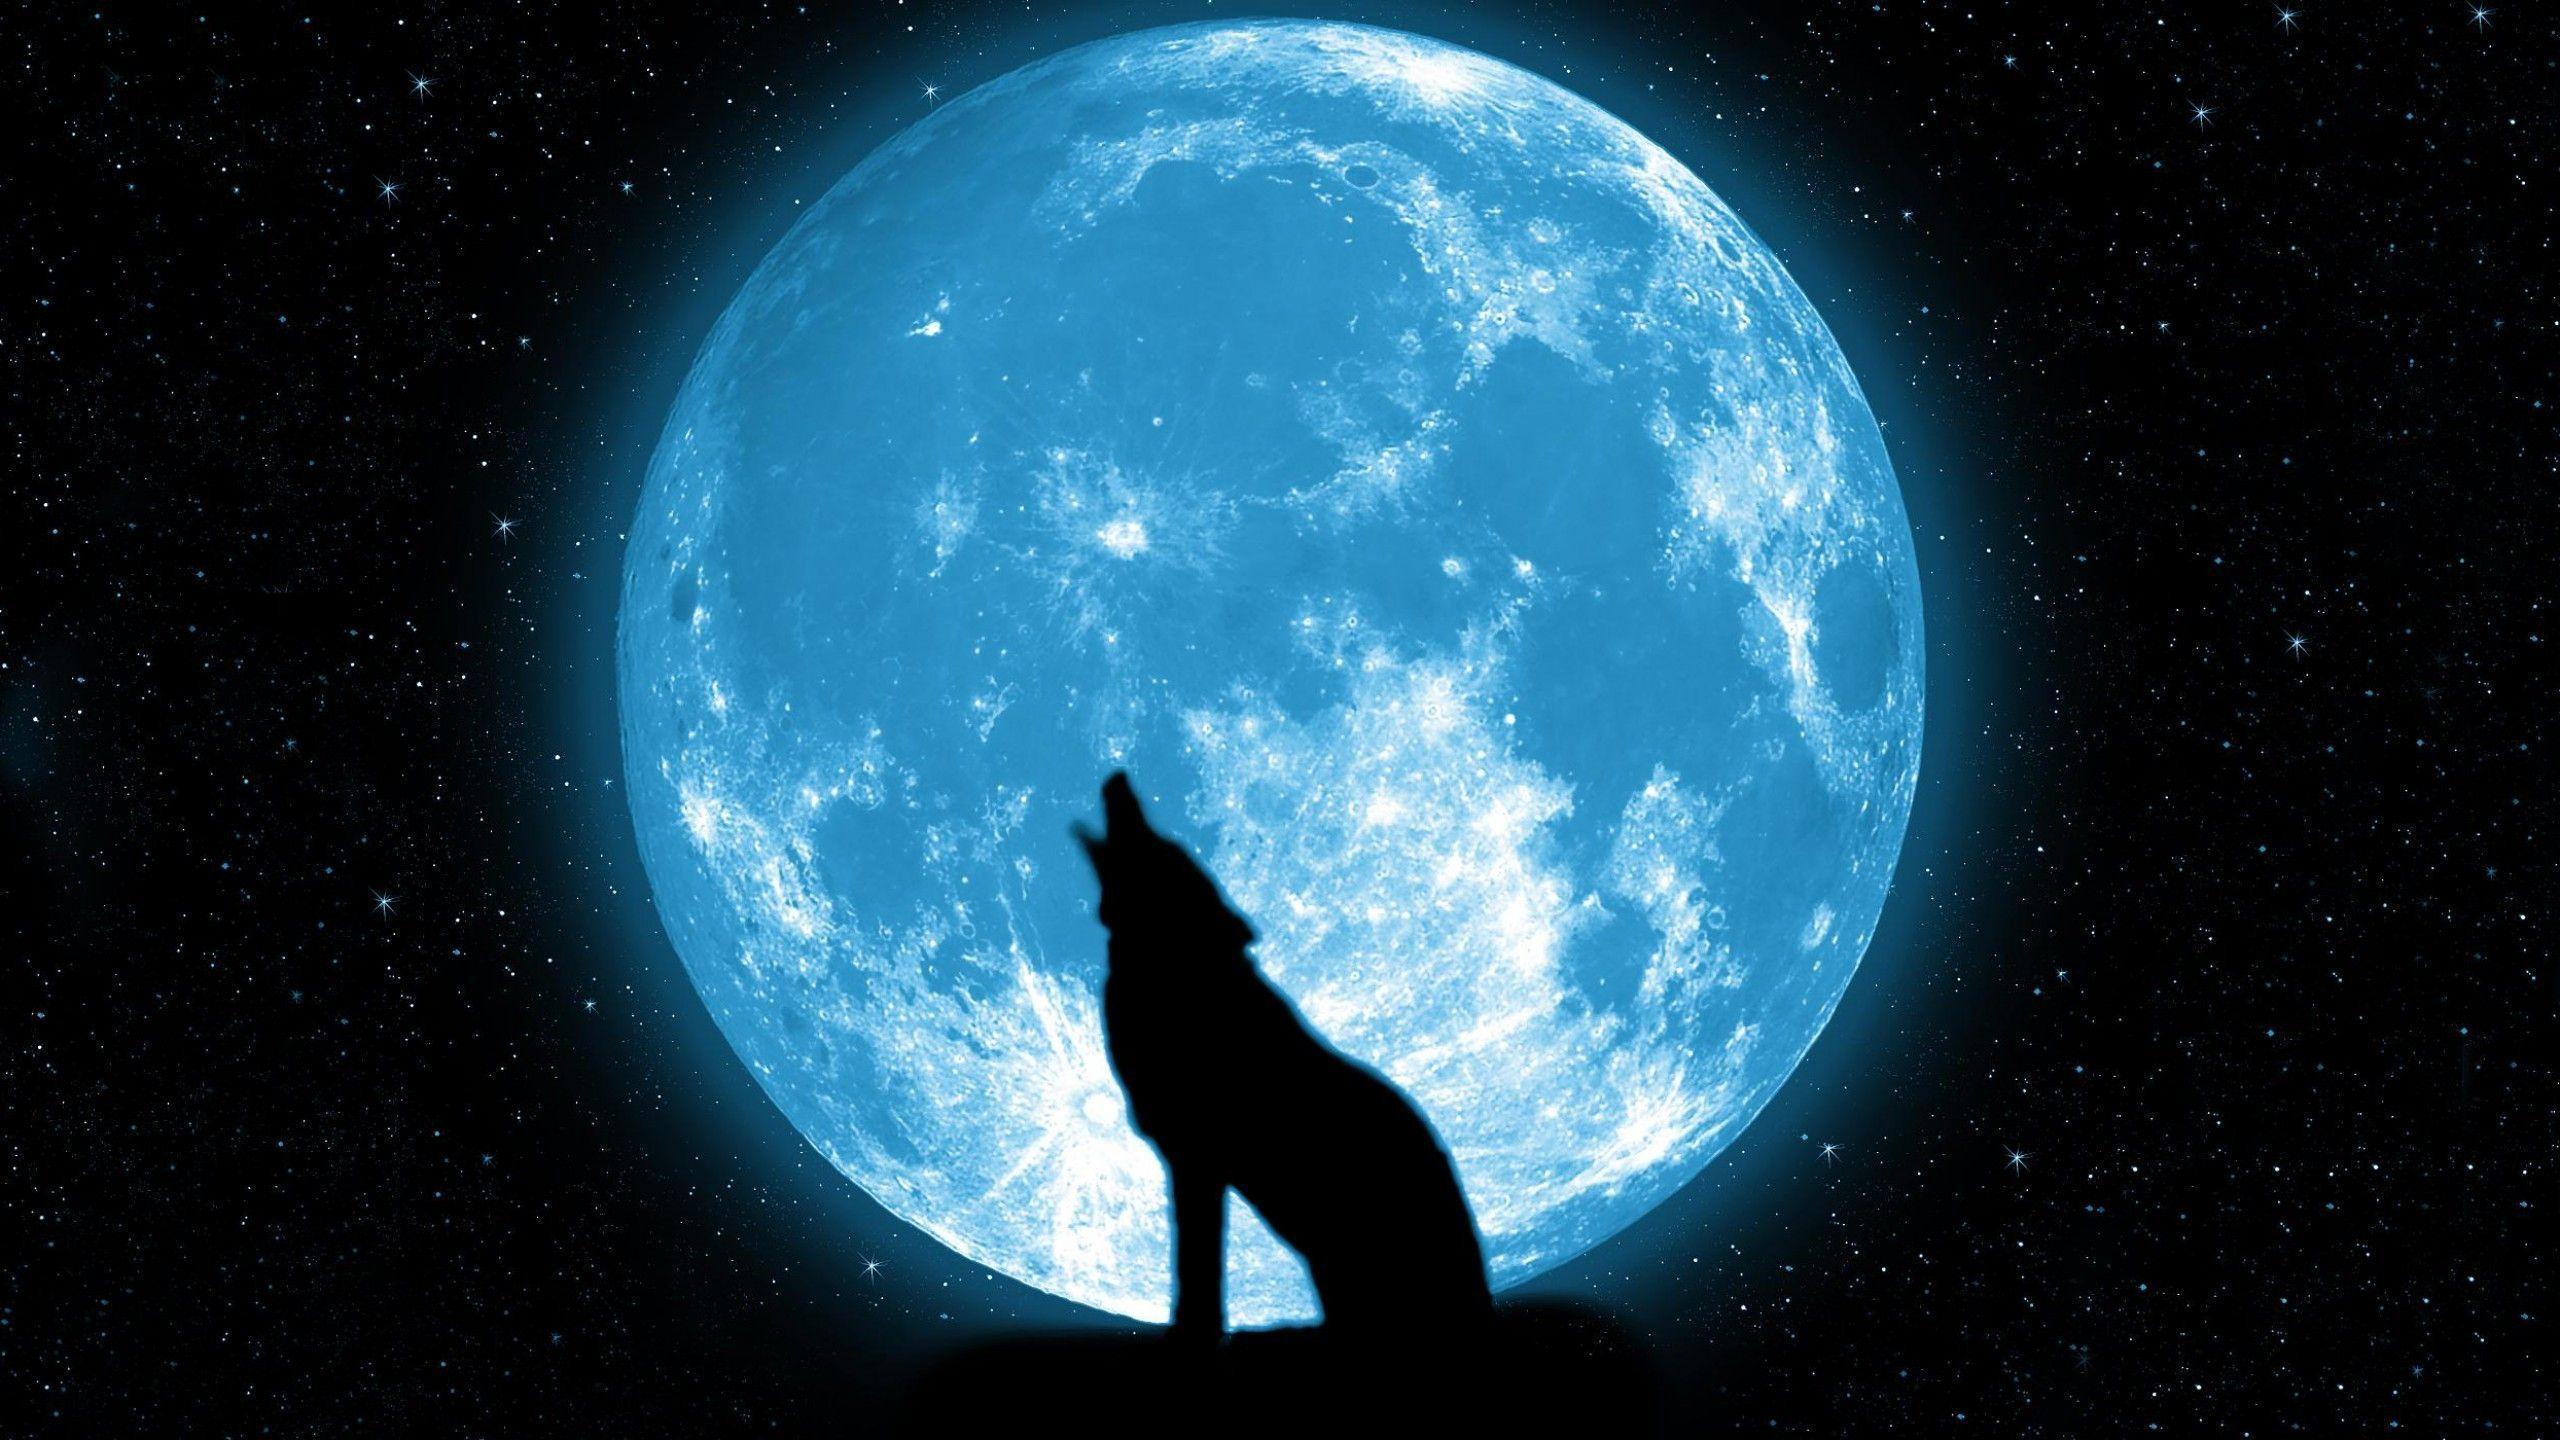 Howling Wolf Wallpapers Widescreen For Desktop Wallpaper 2560 X 1440